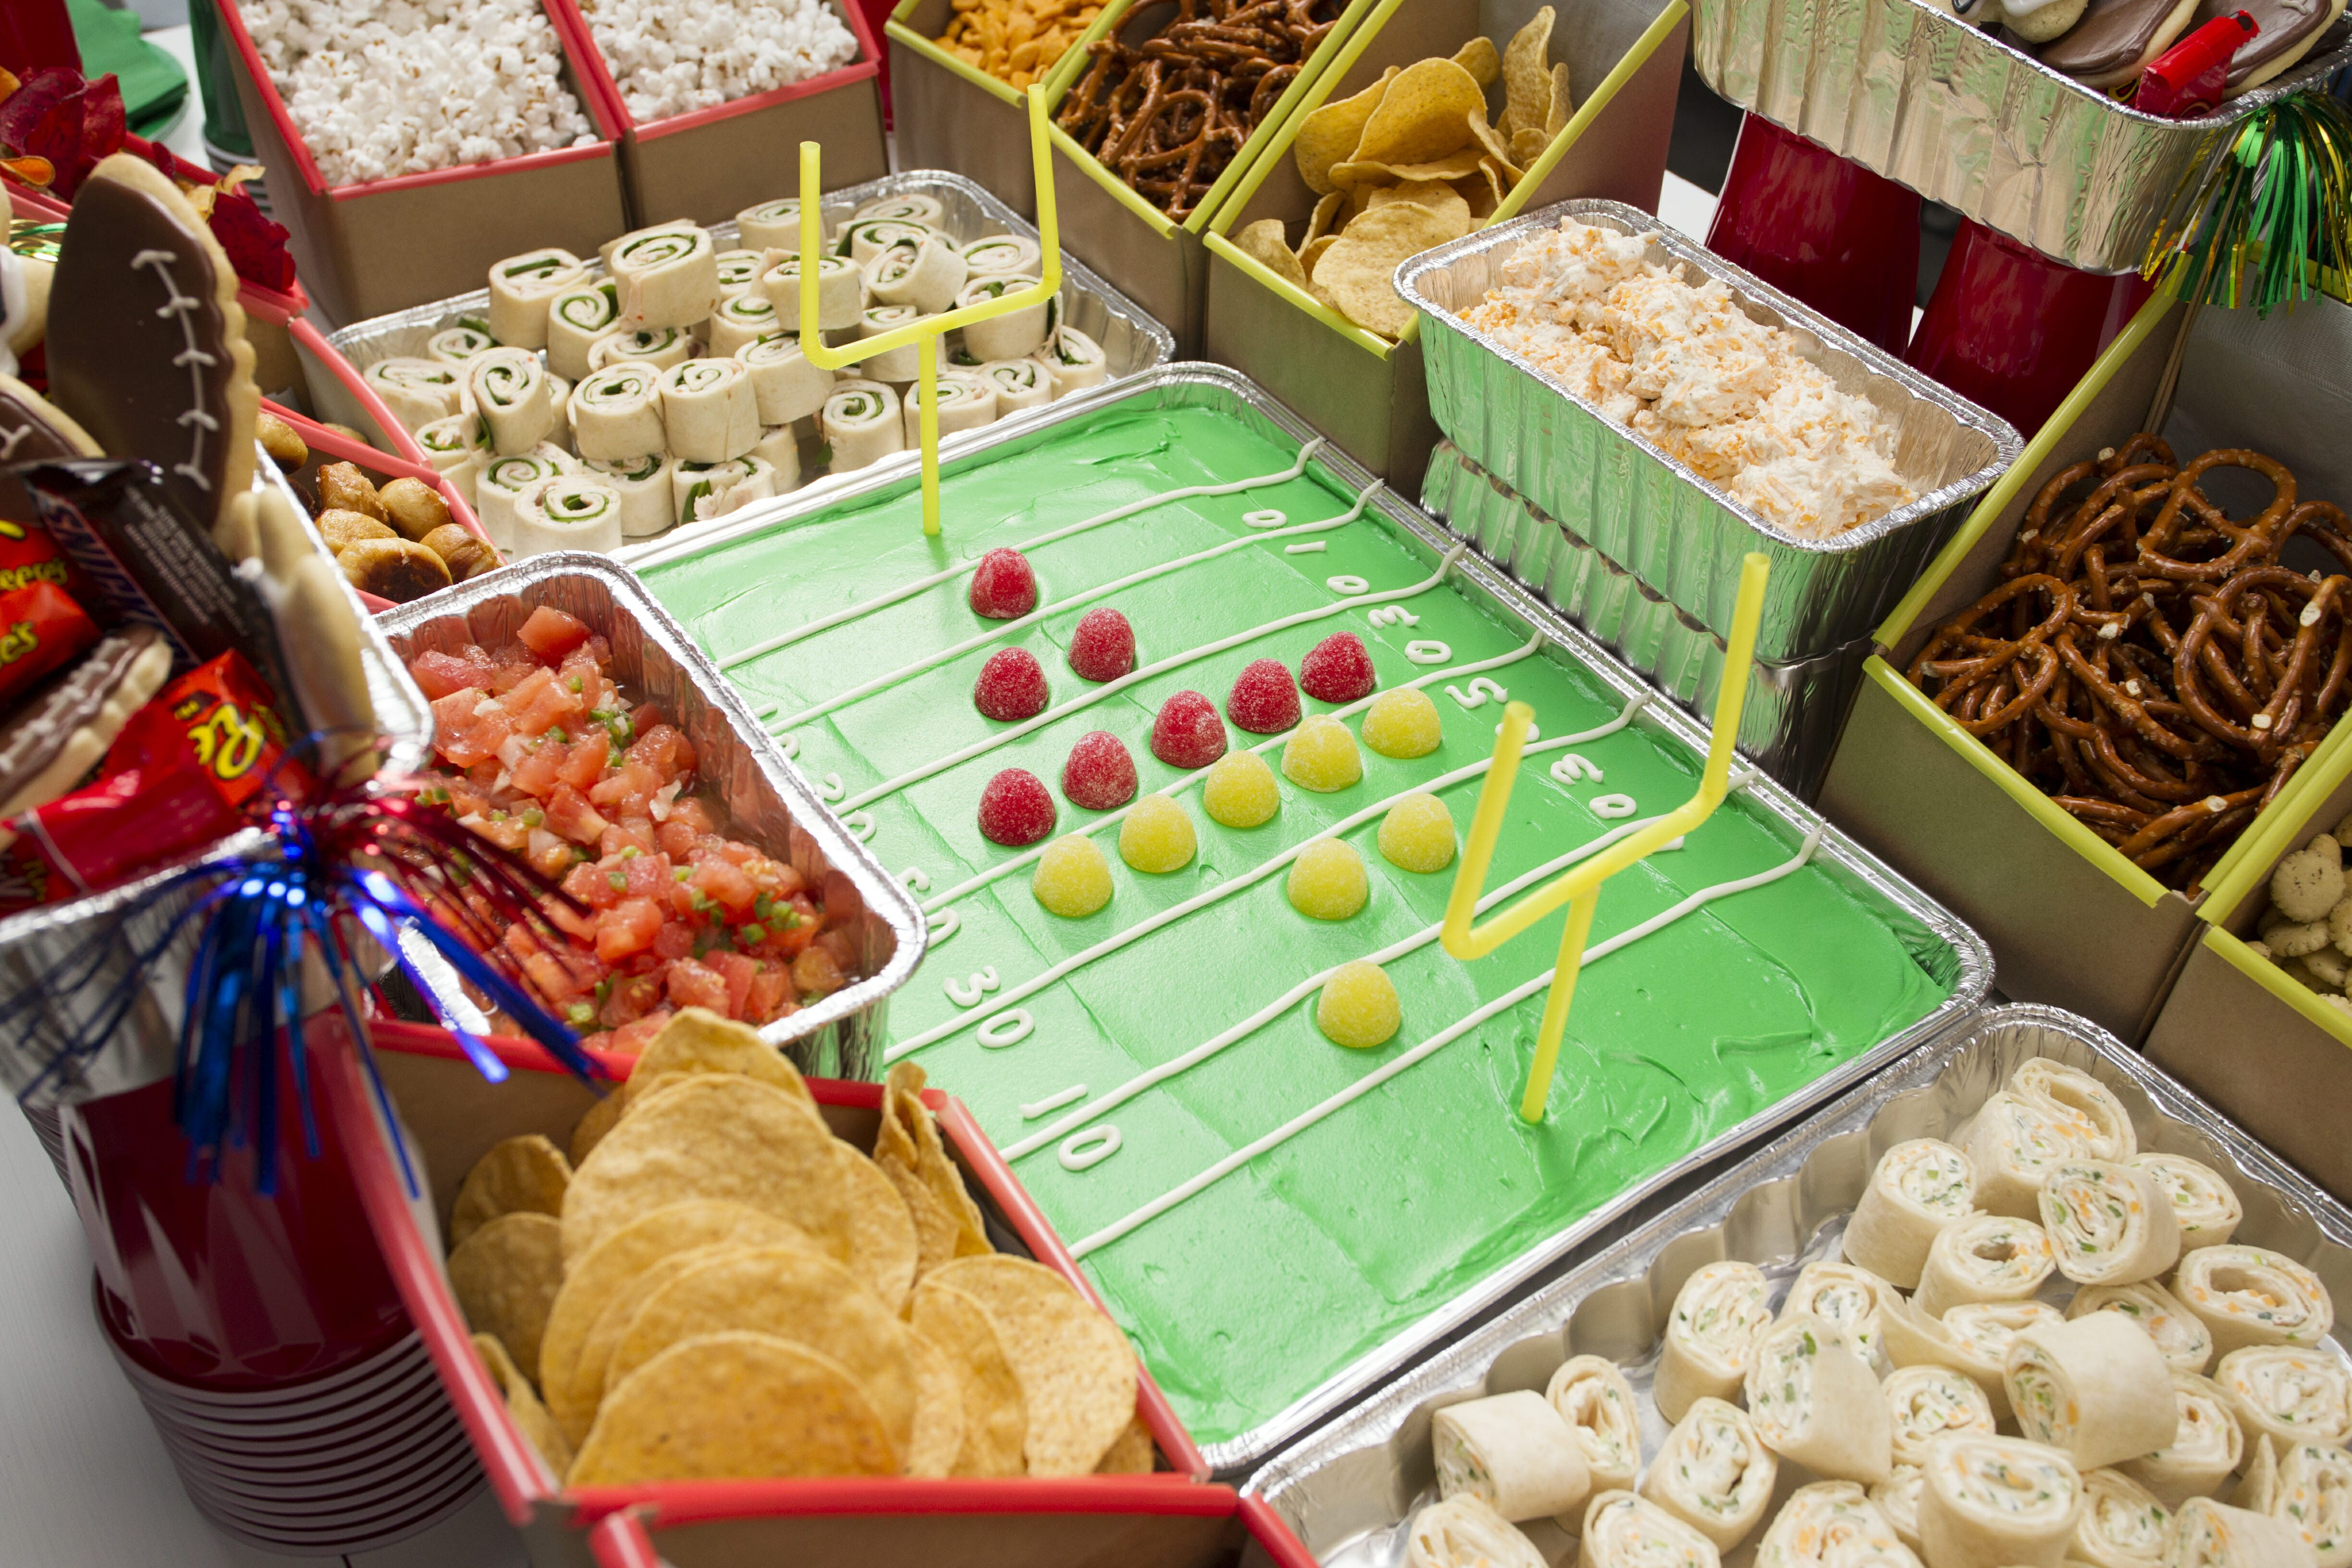 How To Build A Super Bowl Snack Stadium Taste Of Home